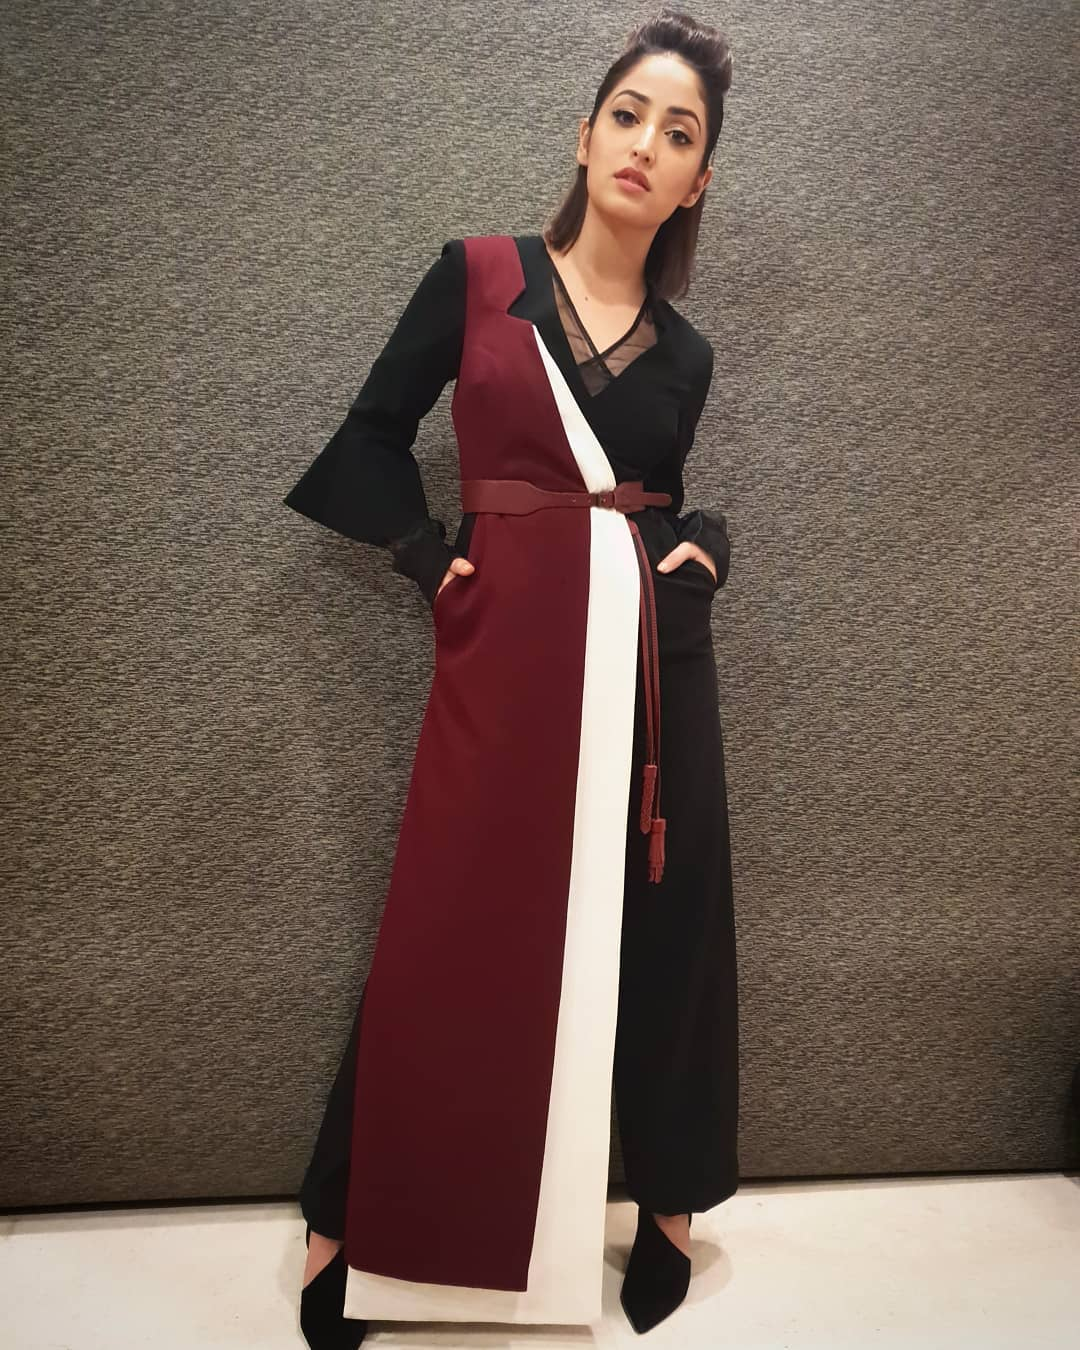 Yami Gautam Jumpsuit sleek belted outfit Belted Outfit Ideas